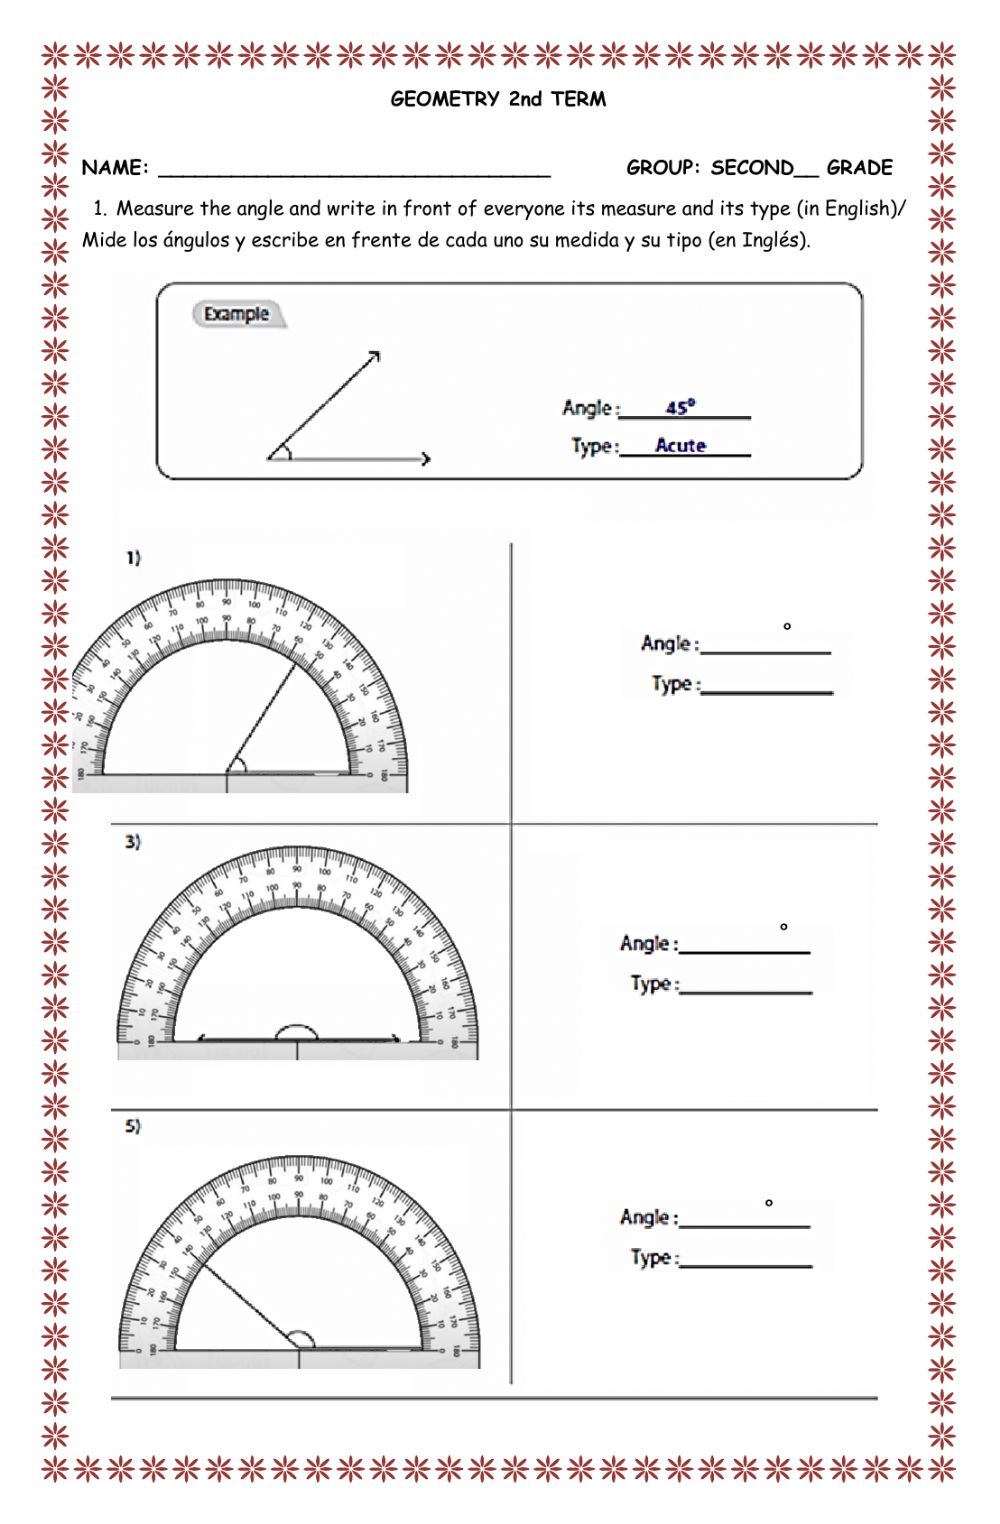 hight resolution of Evaluation second term second grade Geometry worksheet